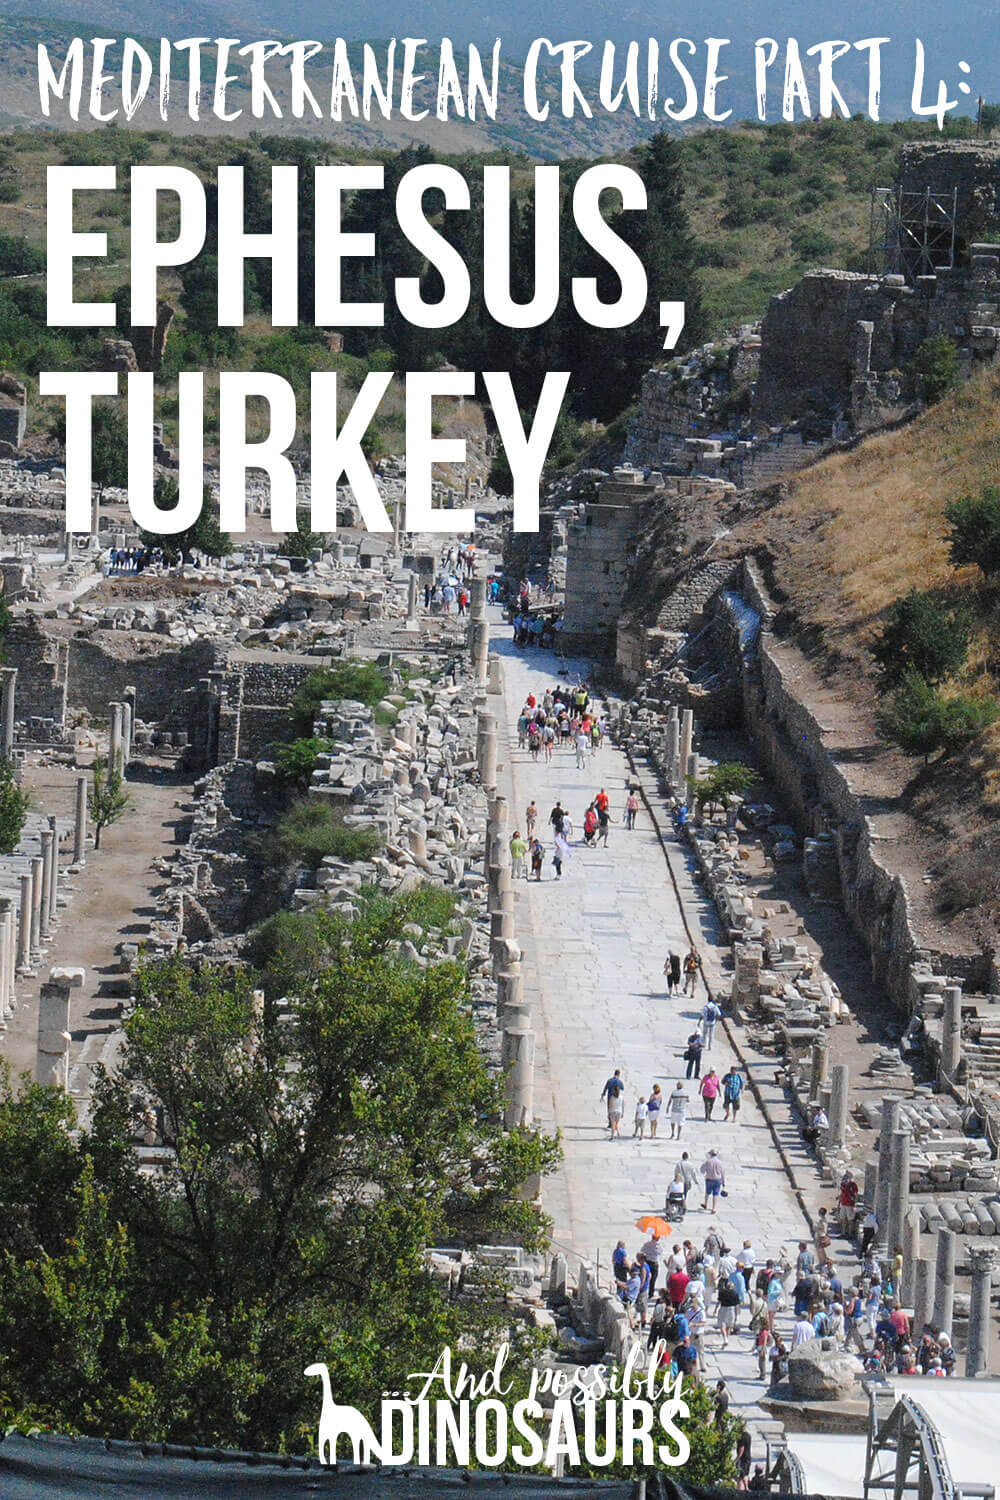 If you go on a Mediterranean cruise, make sure that Ephesus, Turkey is one of your ports — you won't want to miss it! Click through to find out what it's like!